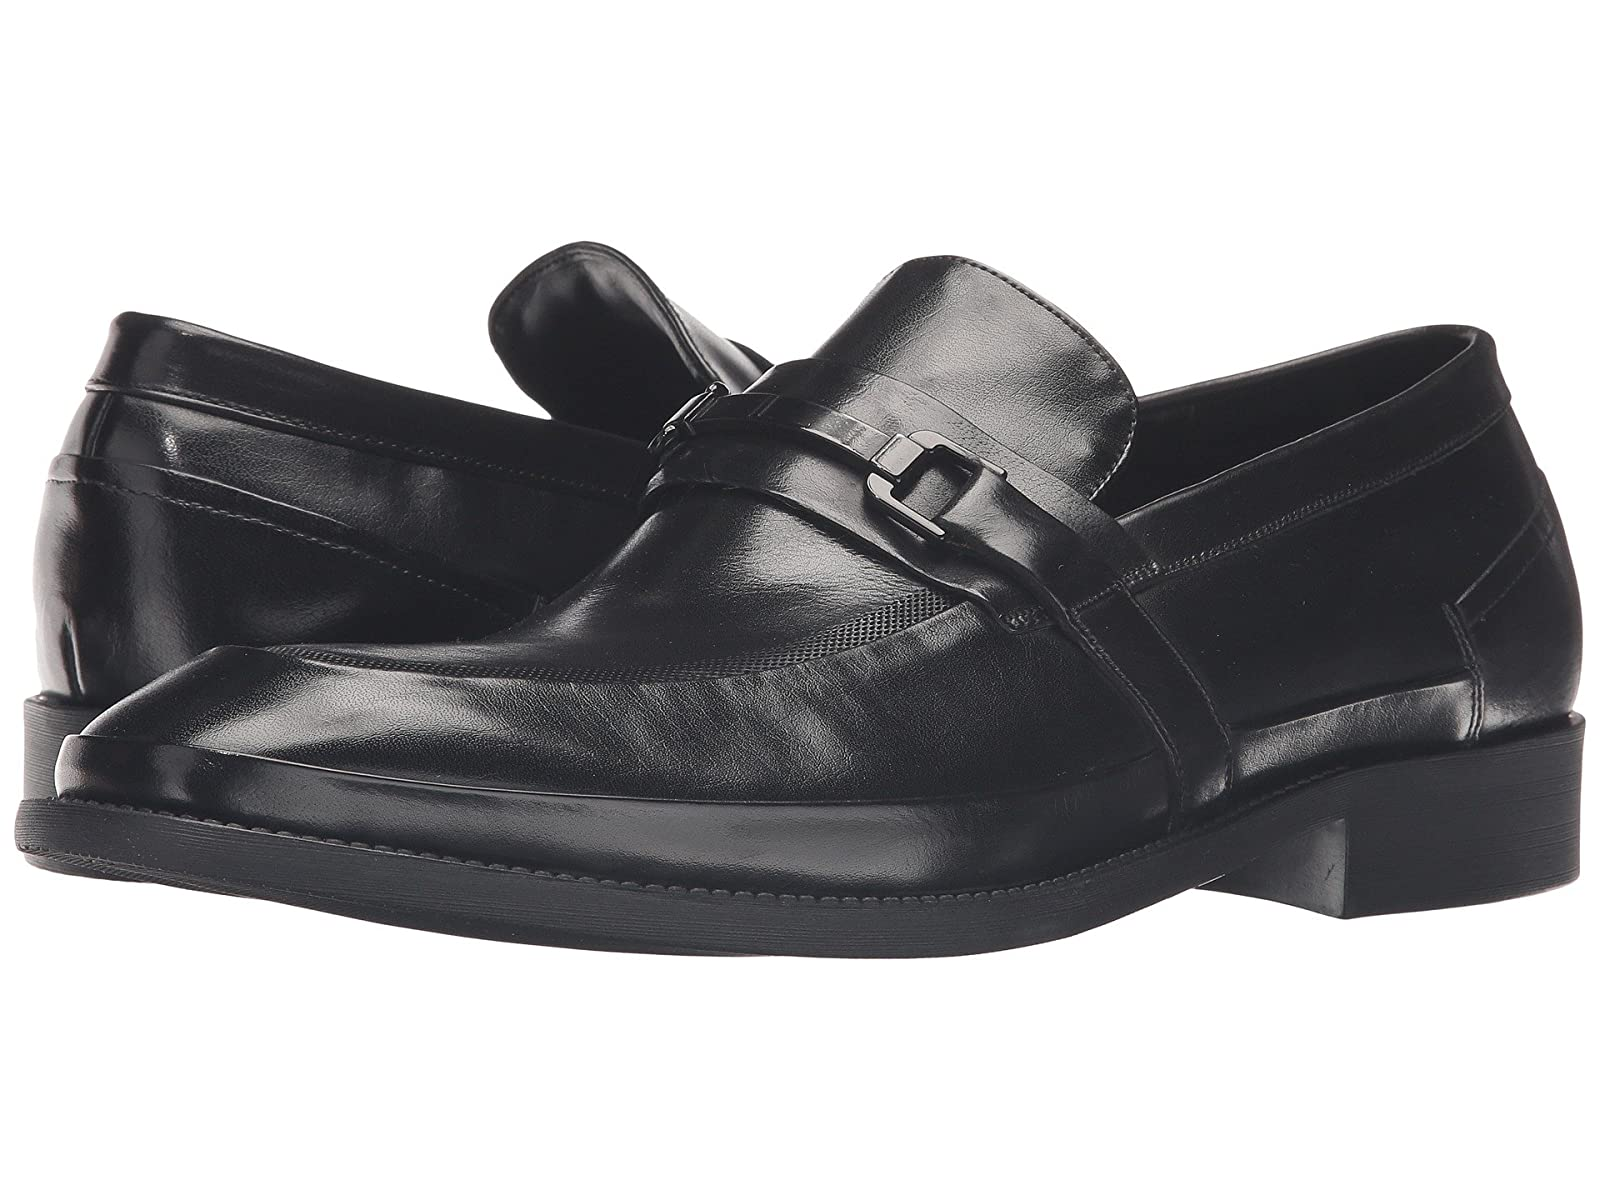 Kenneth Cole Reaction Brick WallCheap and distinctive eye-catching shoes